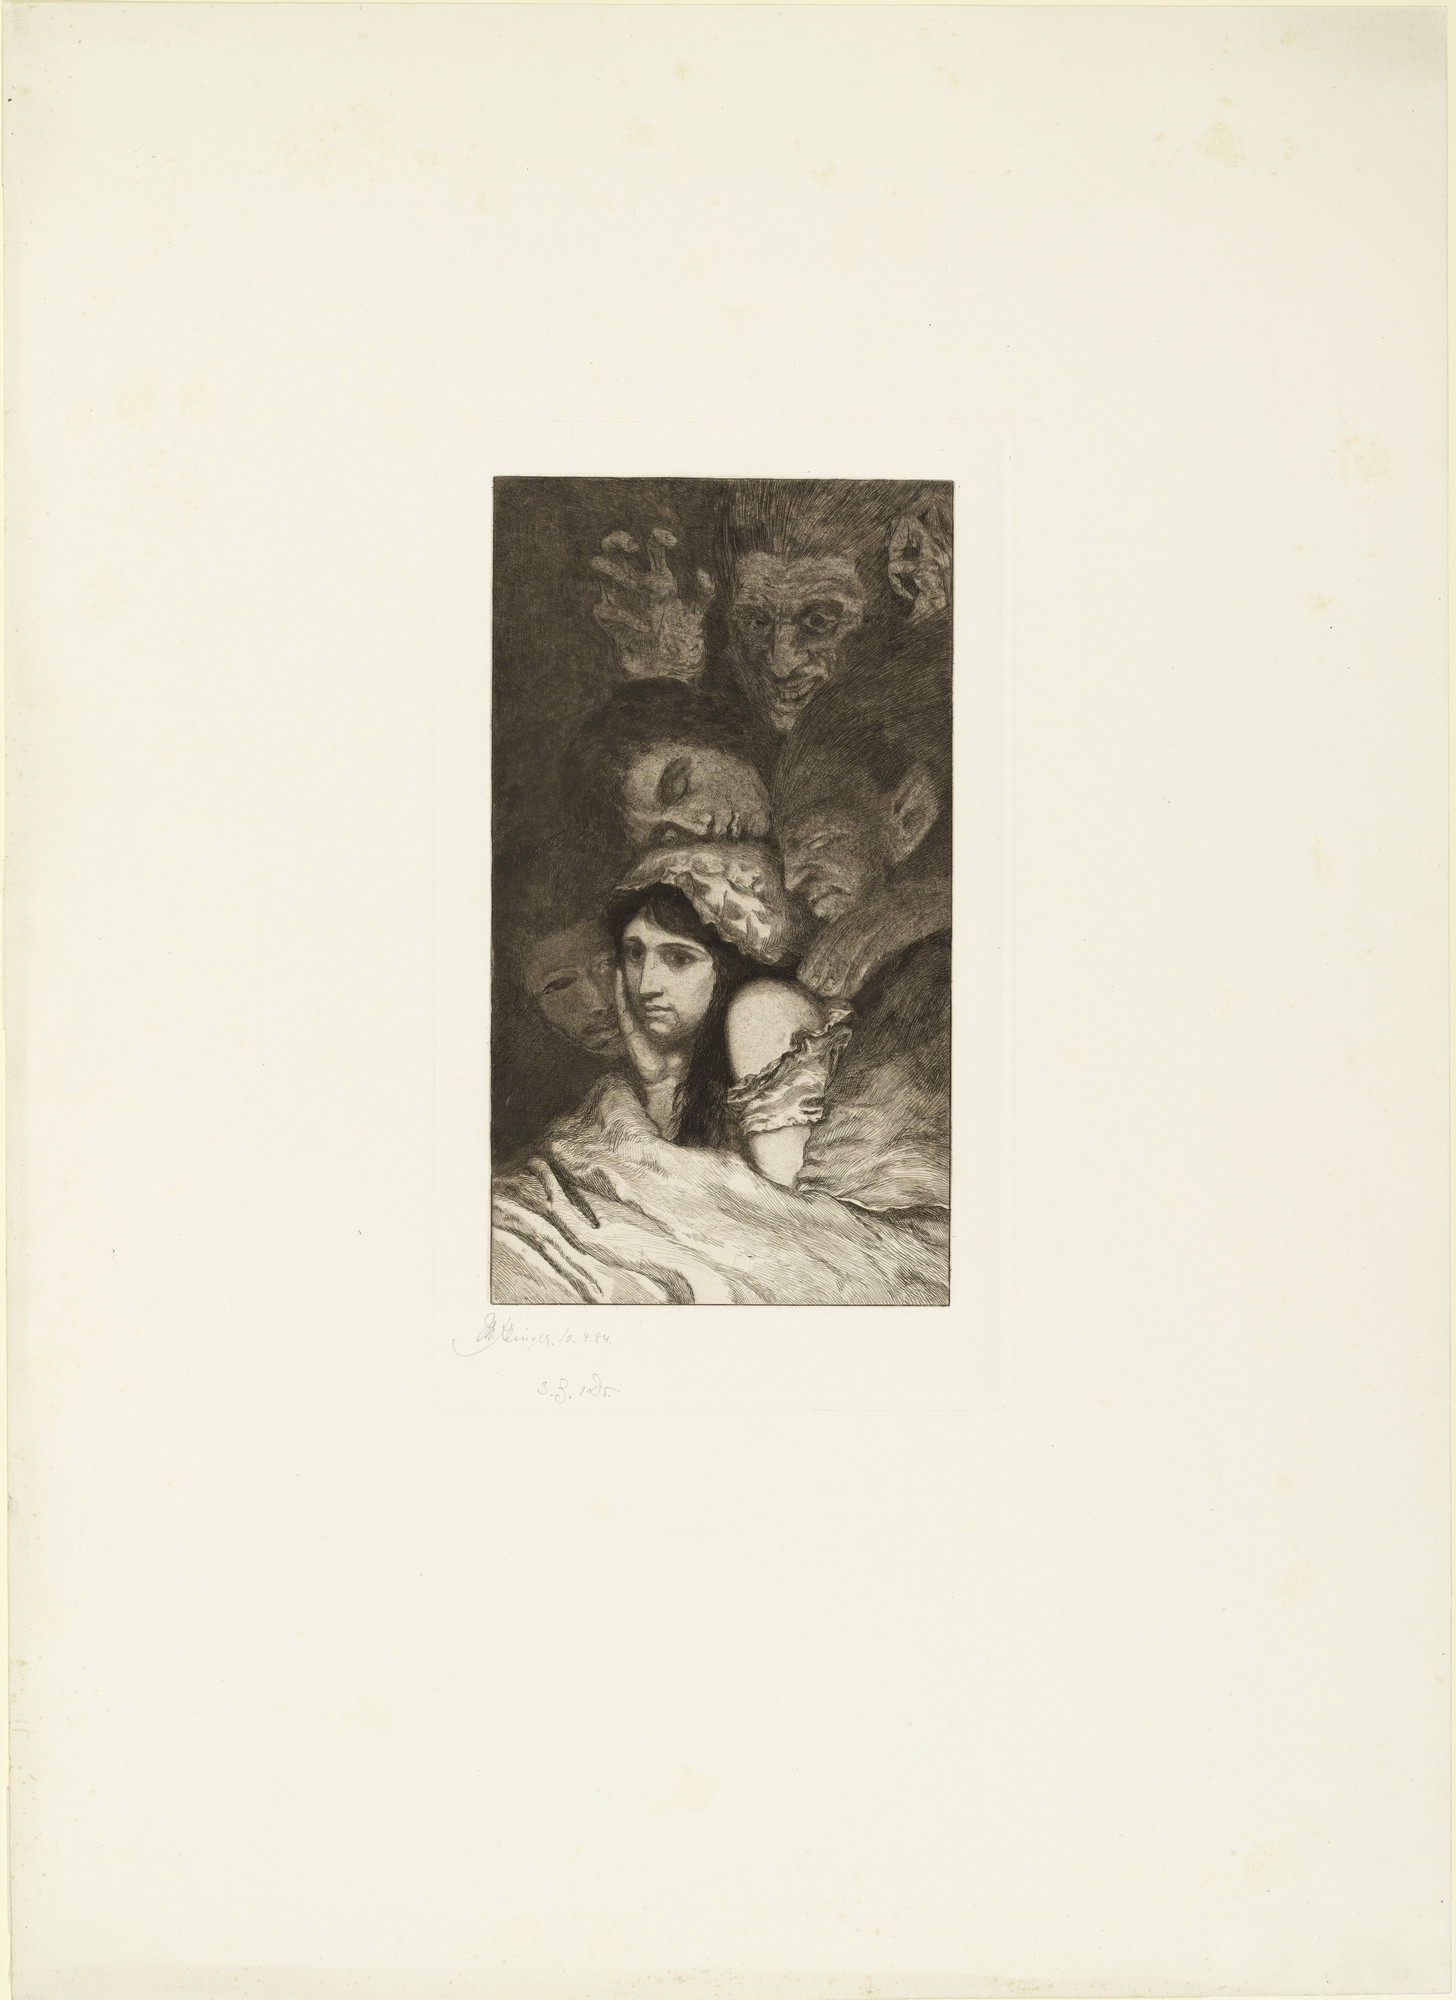 Max Klinger. Dreams (Träume) (plate 3) for the portfolio A Life, Opus VIII (Ein Leben, Opus VIII). 1884 (executed 1883, first published 1884)